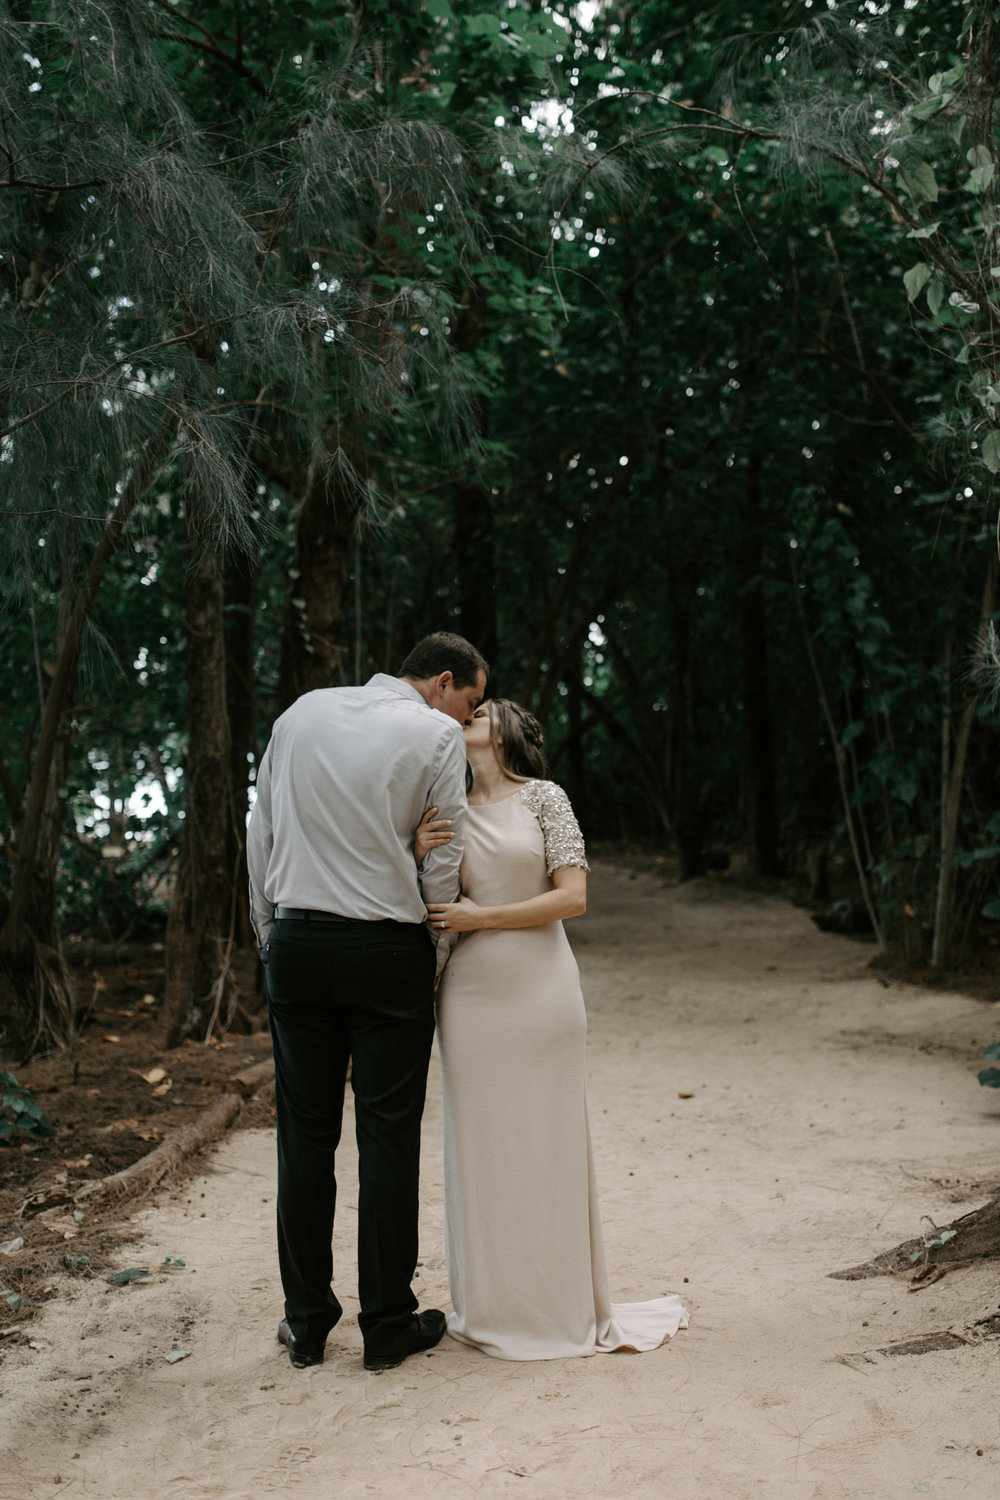 Blush Wedding Dress | Kualoa Ranch Secret Island Elopement by Hawaii Wedding Photographer Desiree Leilani